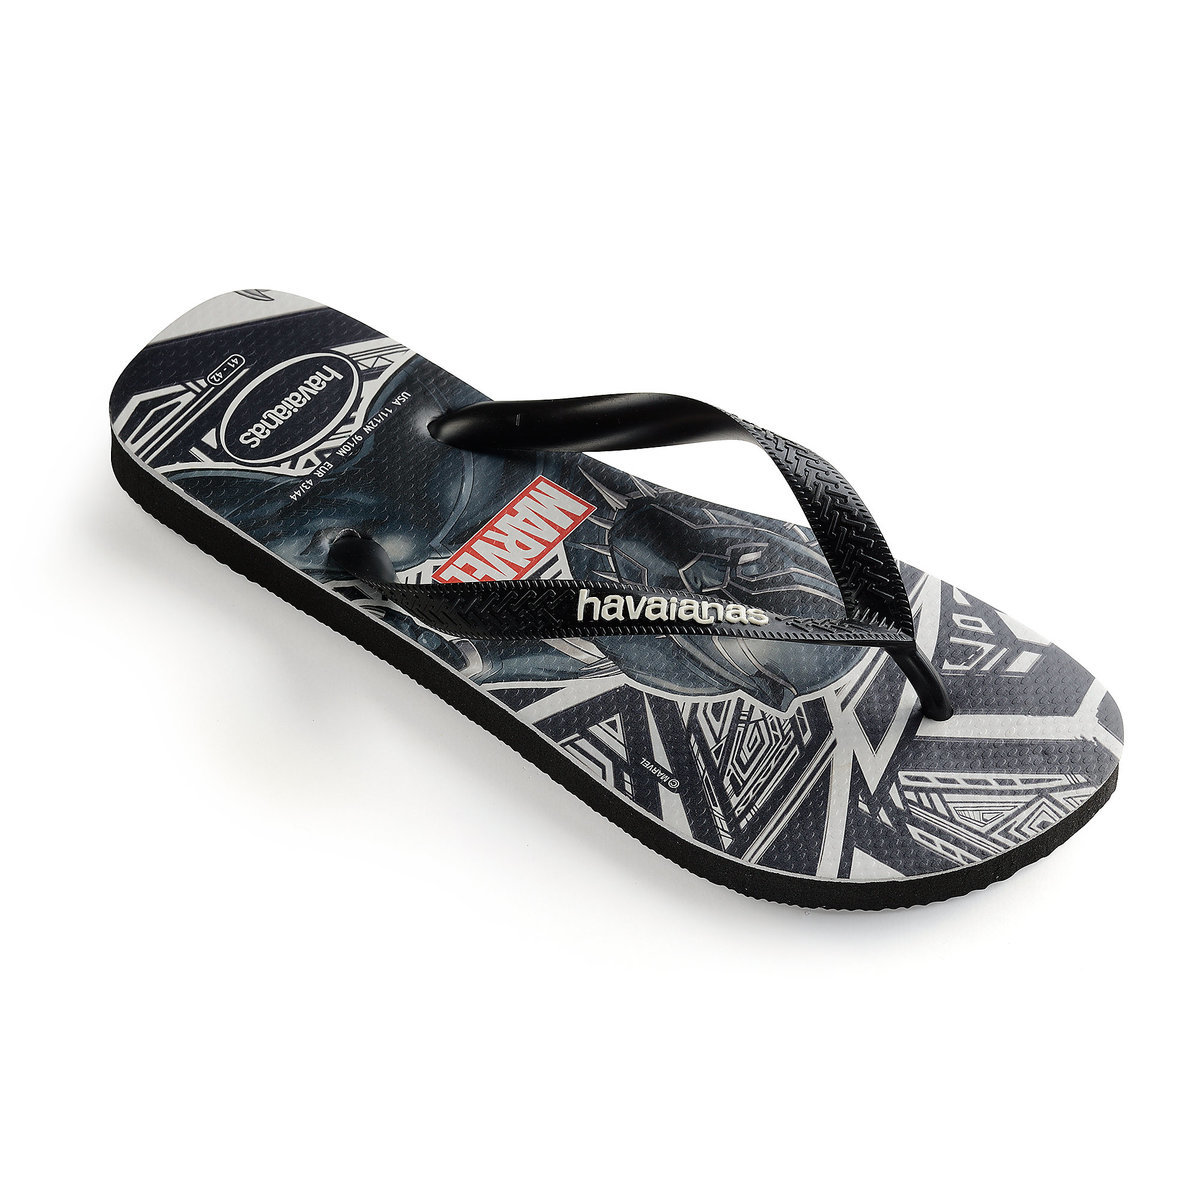 bf7a1b6d5 Product Image of Black Panther Flip Flops for Men by Havaianas   1